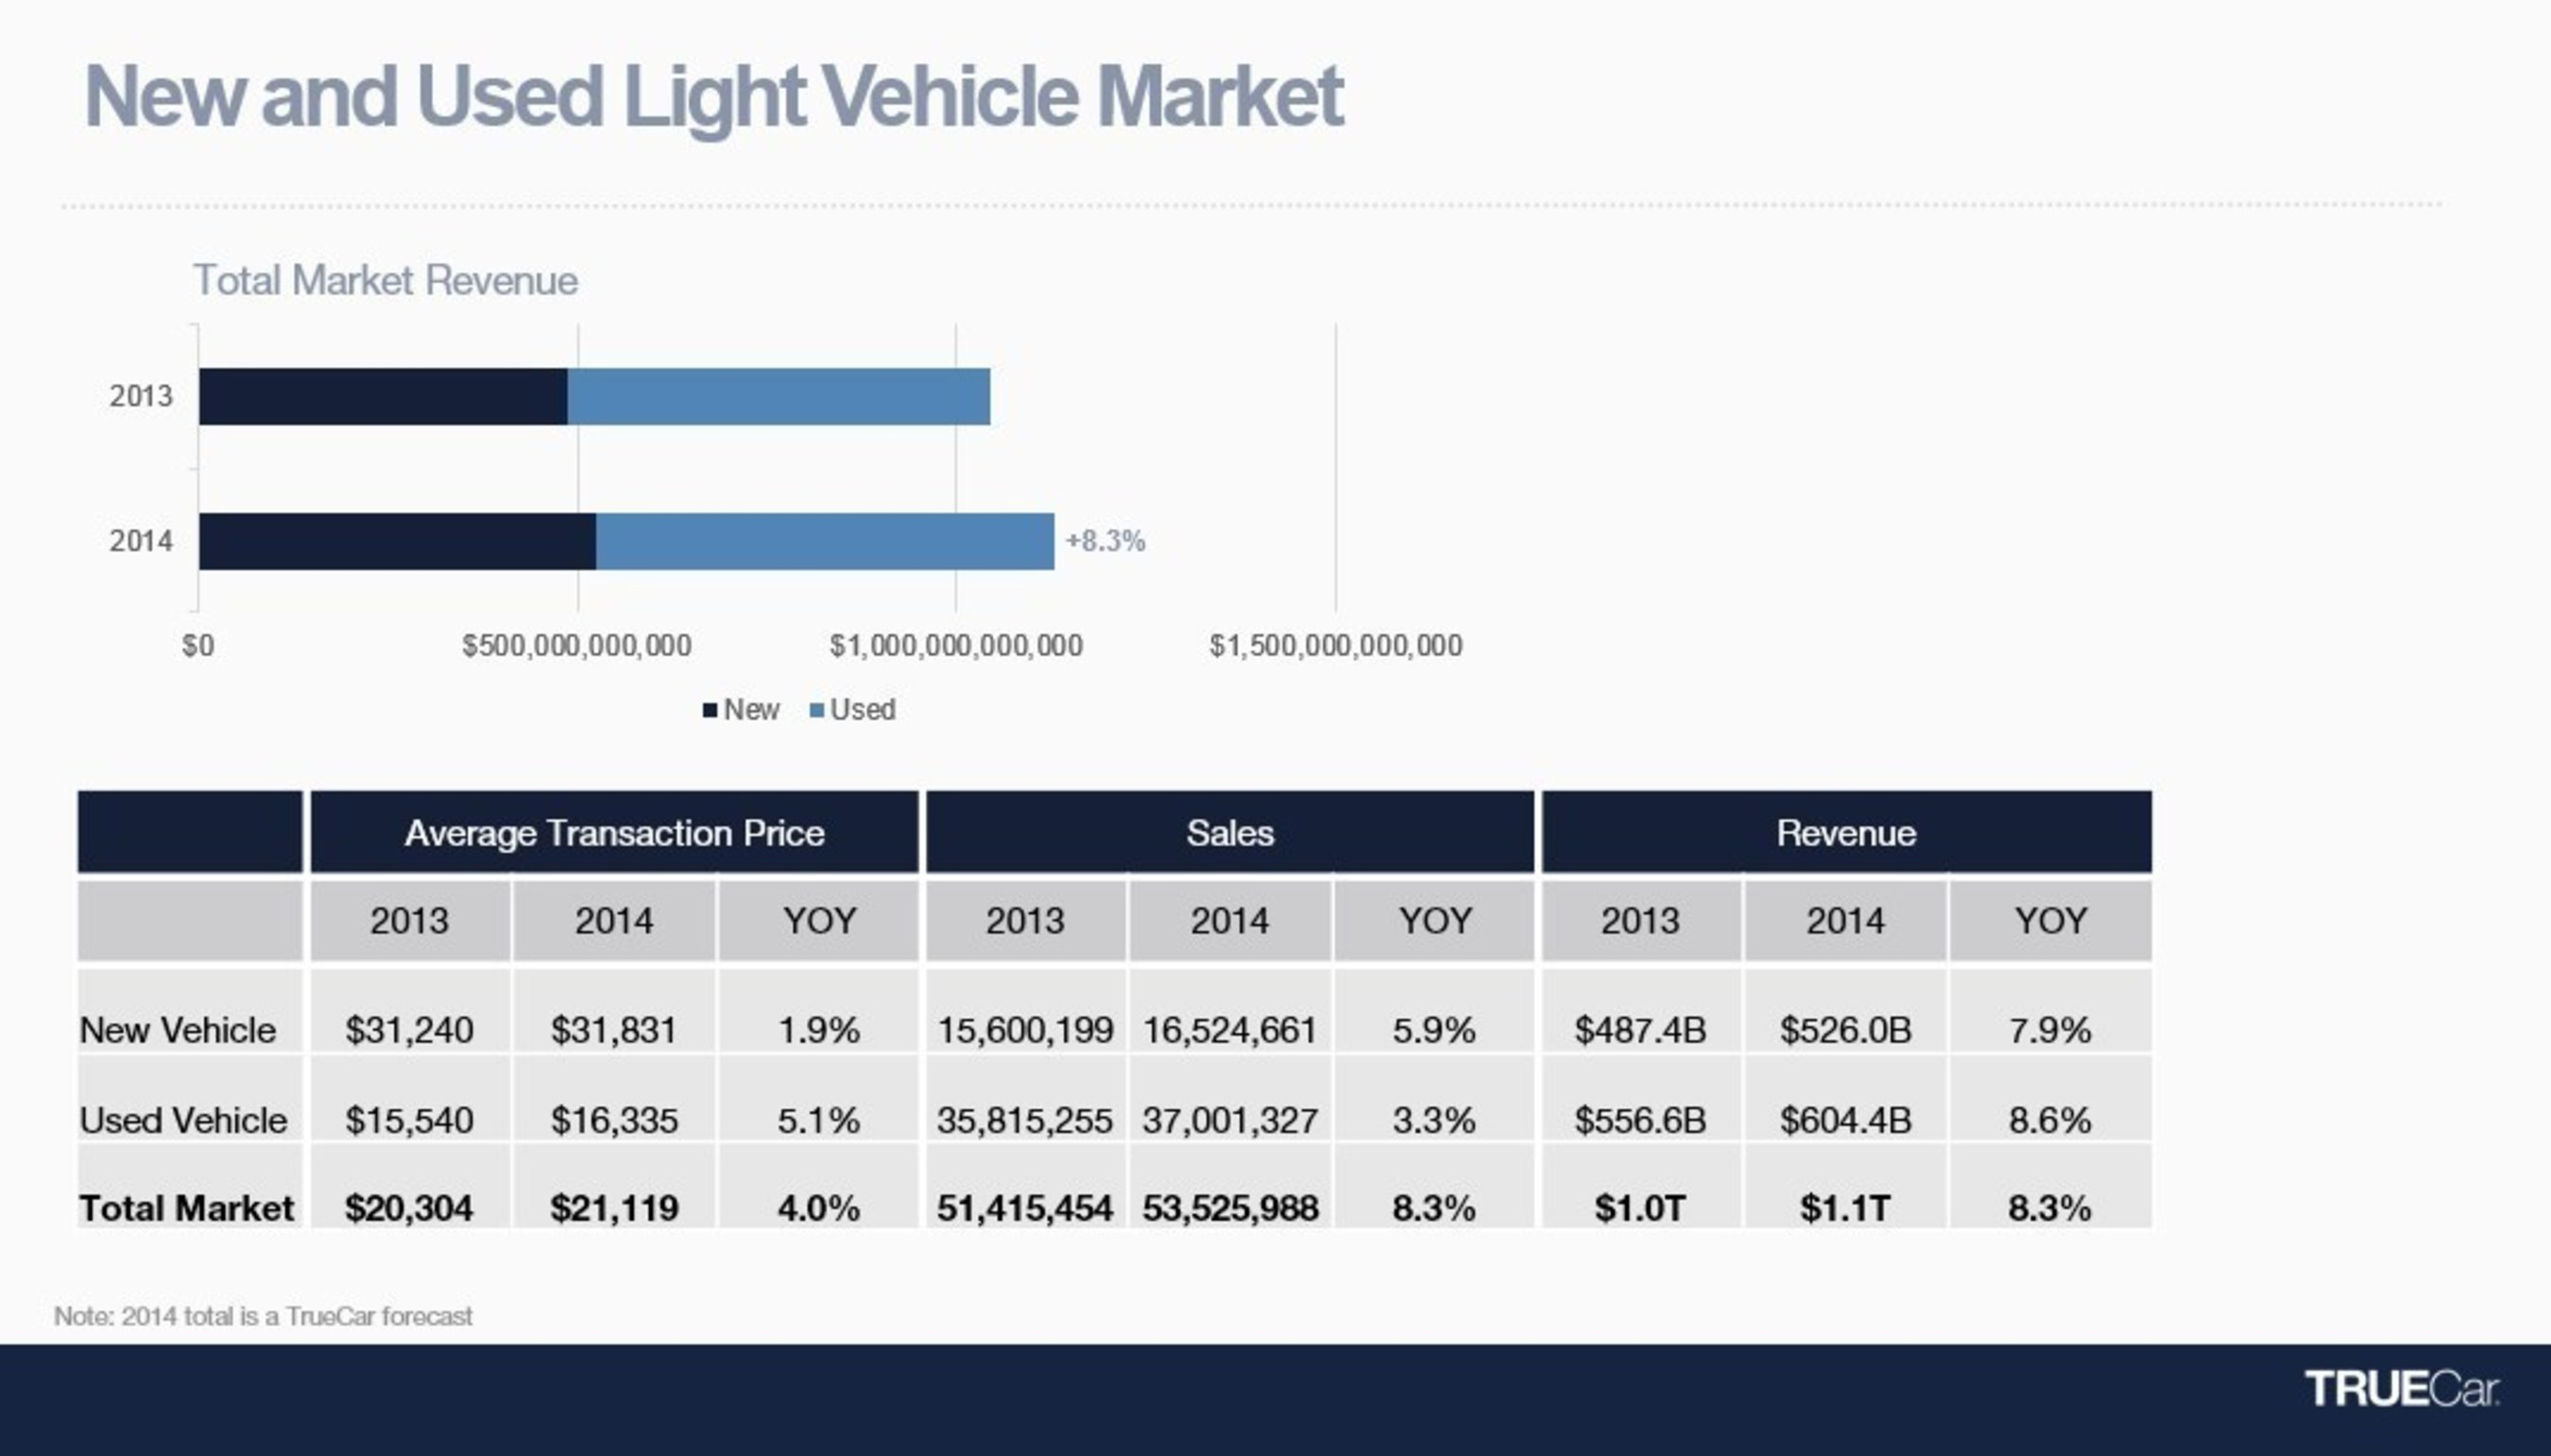 truecar projects bined revenue for new and used u s auto sales to top $1 1 trillion in 2014